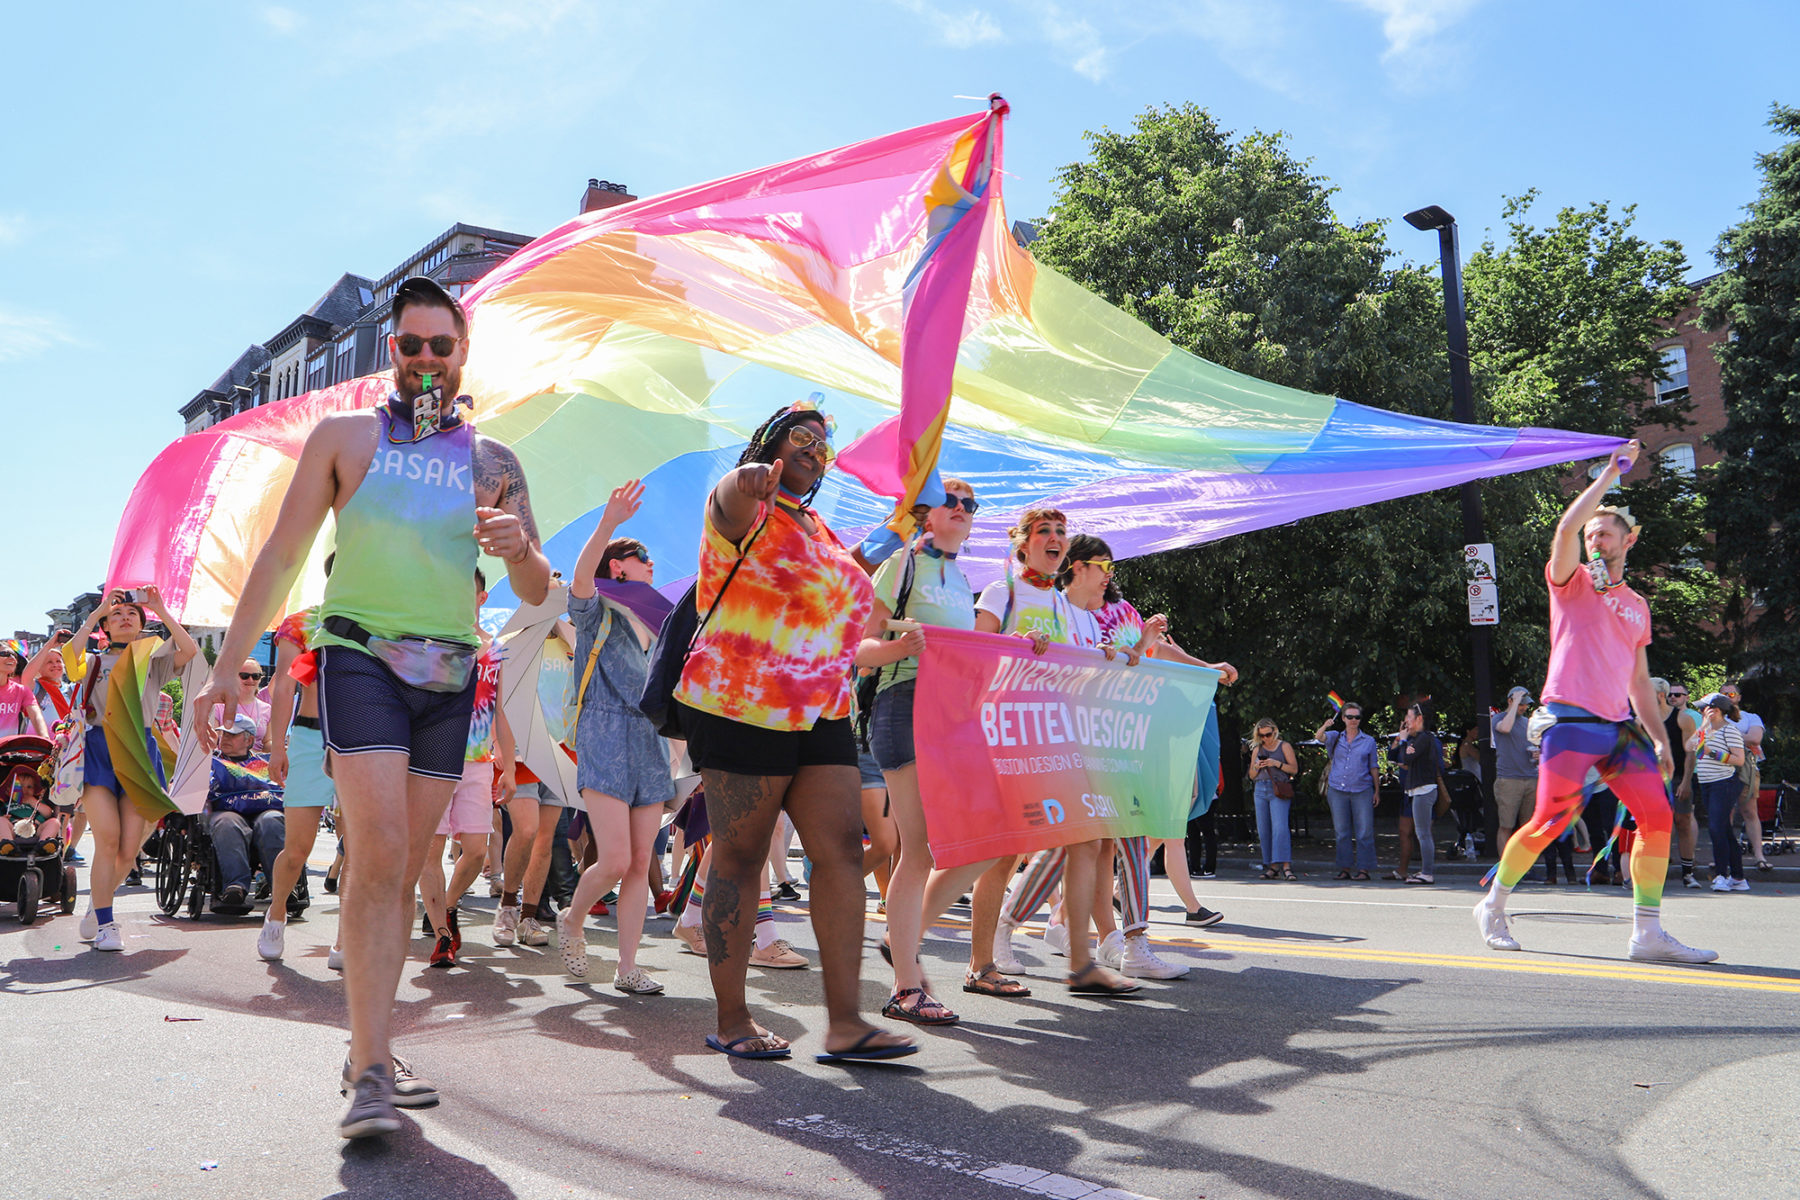 Sasakians marching in Boston's 2019 Pride Parade holding a flag overhead